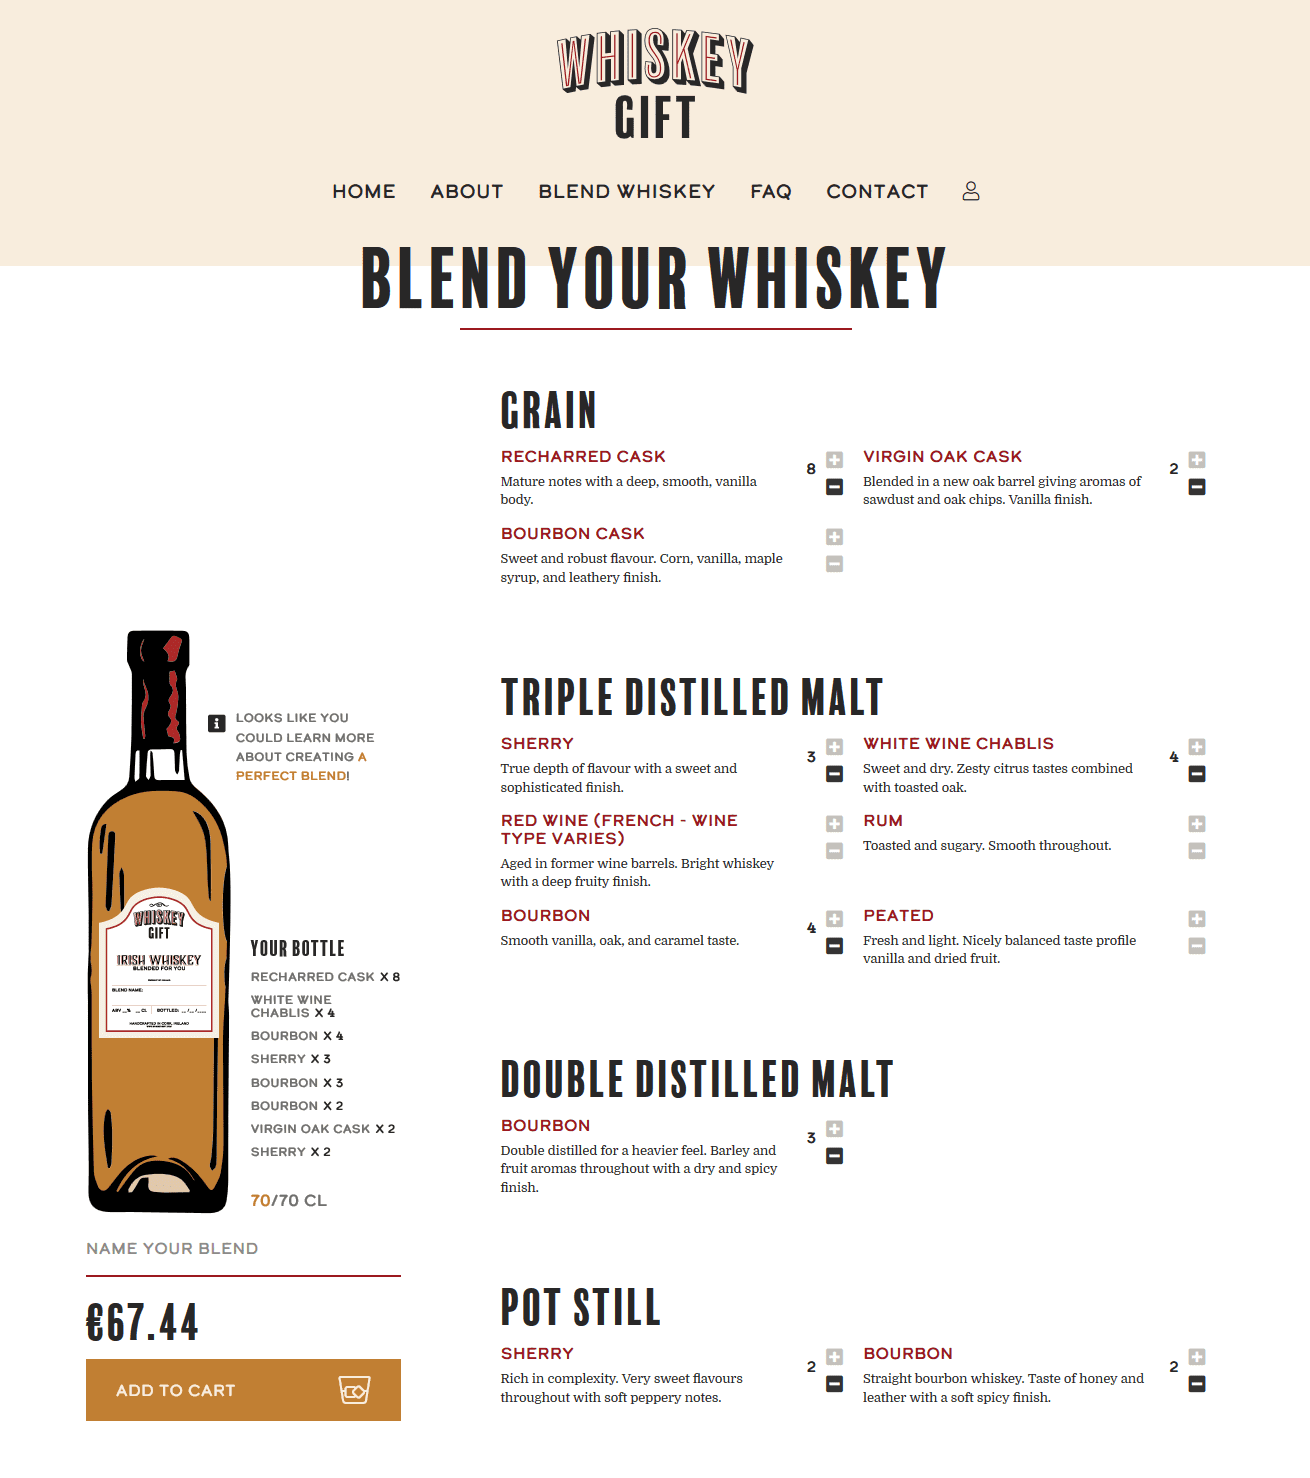 Whiskey Gift Ernest Cantillon Irish Whiskey Blog Stuart McNamara